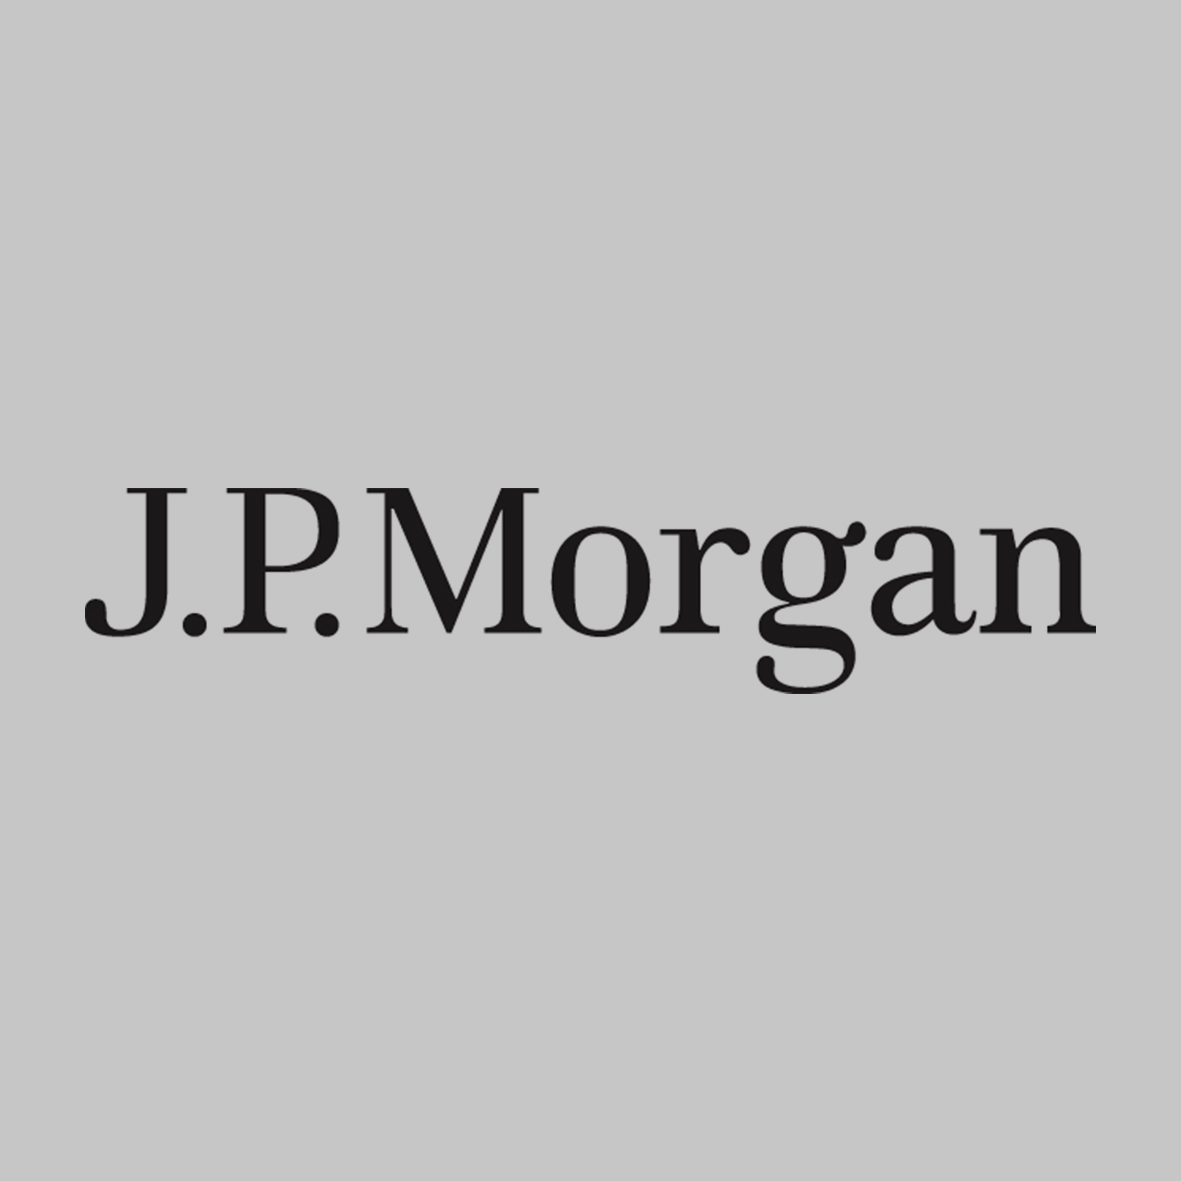 J.P. Morgan   J.P. Morgan is committed to the empowerment and advancement of women, and through the Women on the Move initiative is reaching externally to focus on this audience. An unparalleled global franchise, roots in thousands of local communities and more than 250,000 employees, J.P. Morgan is uniquely positioned to have a positive impact women's success. We're excited to increase our commitment as we help to create a more equitable world.   https://www.jpmorgan.com/country/GB/en/jpmorgan